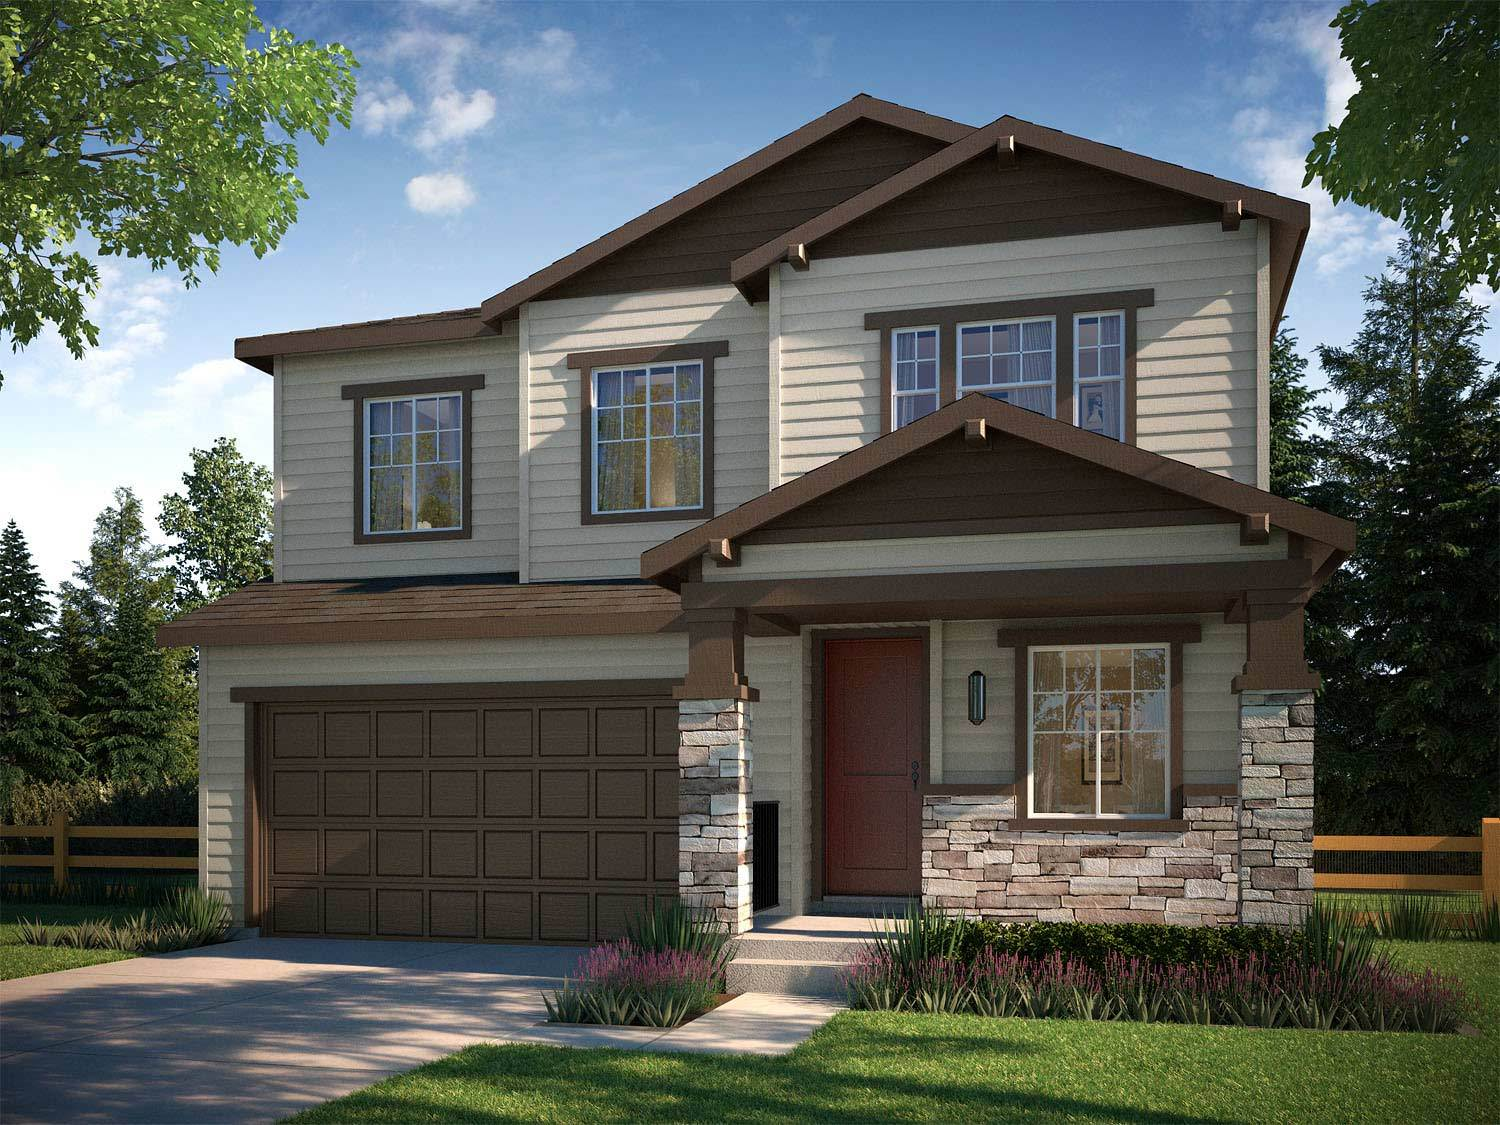 9364 kilmer way arvada co new home for sale 539 900